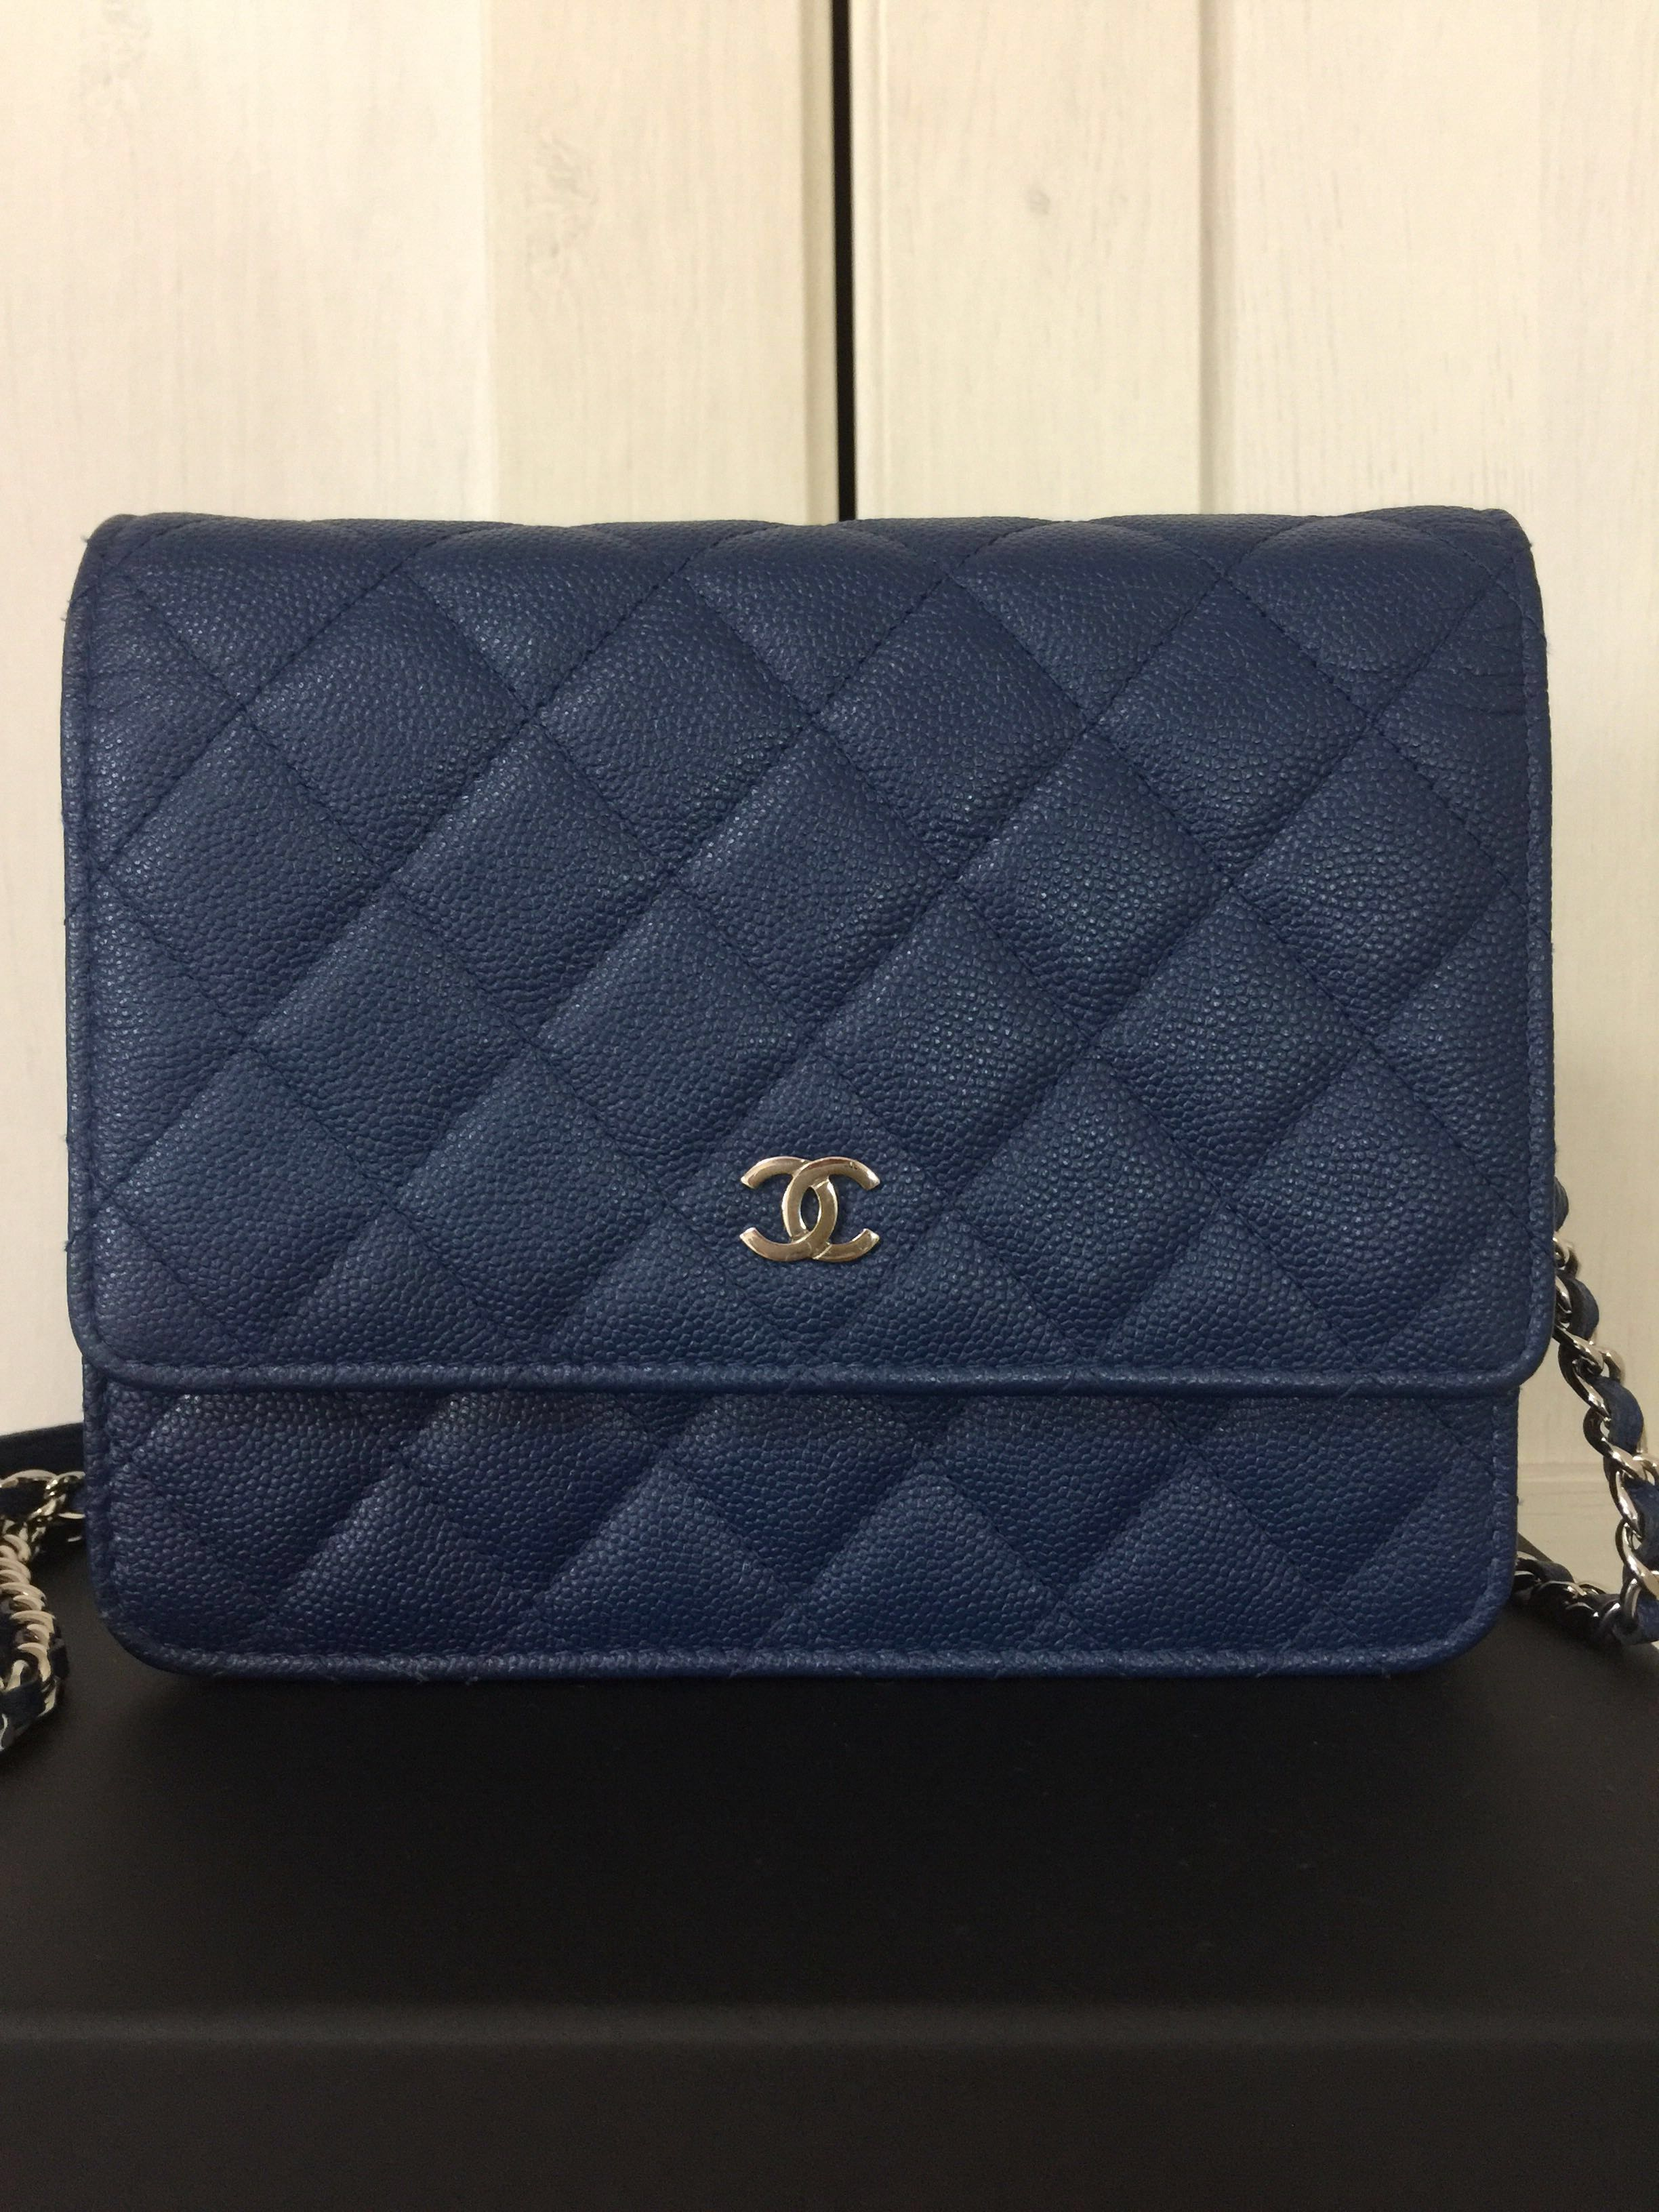 dc408a55a021 Chanel Wallet on Chain WOC (authentic)